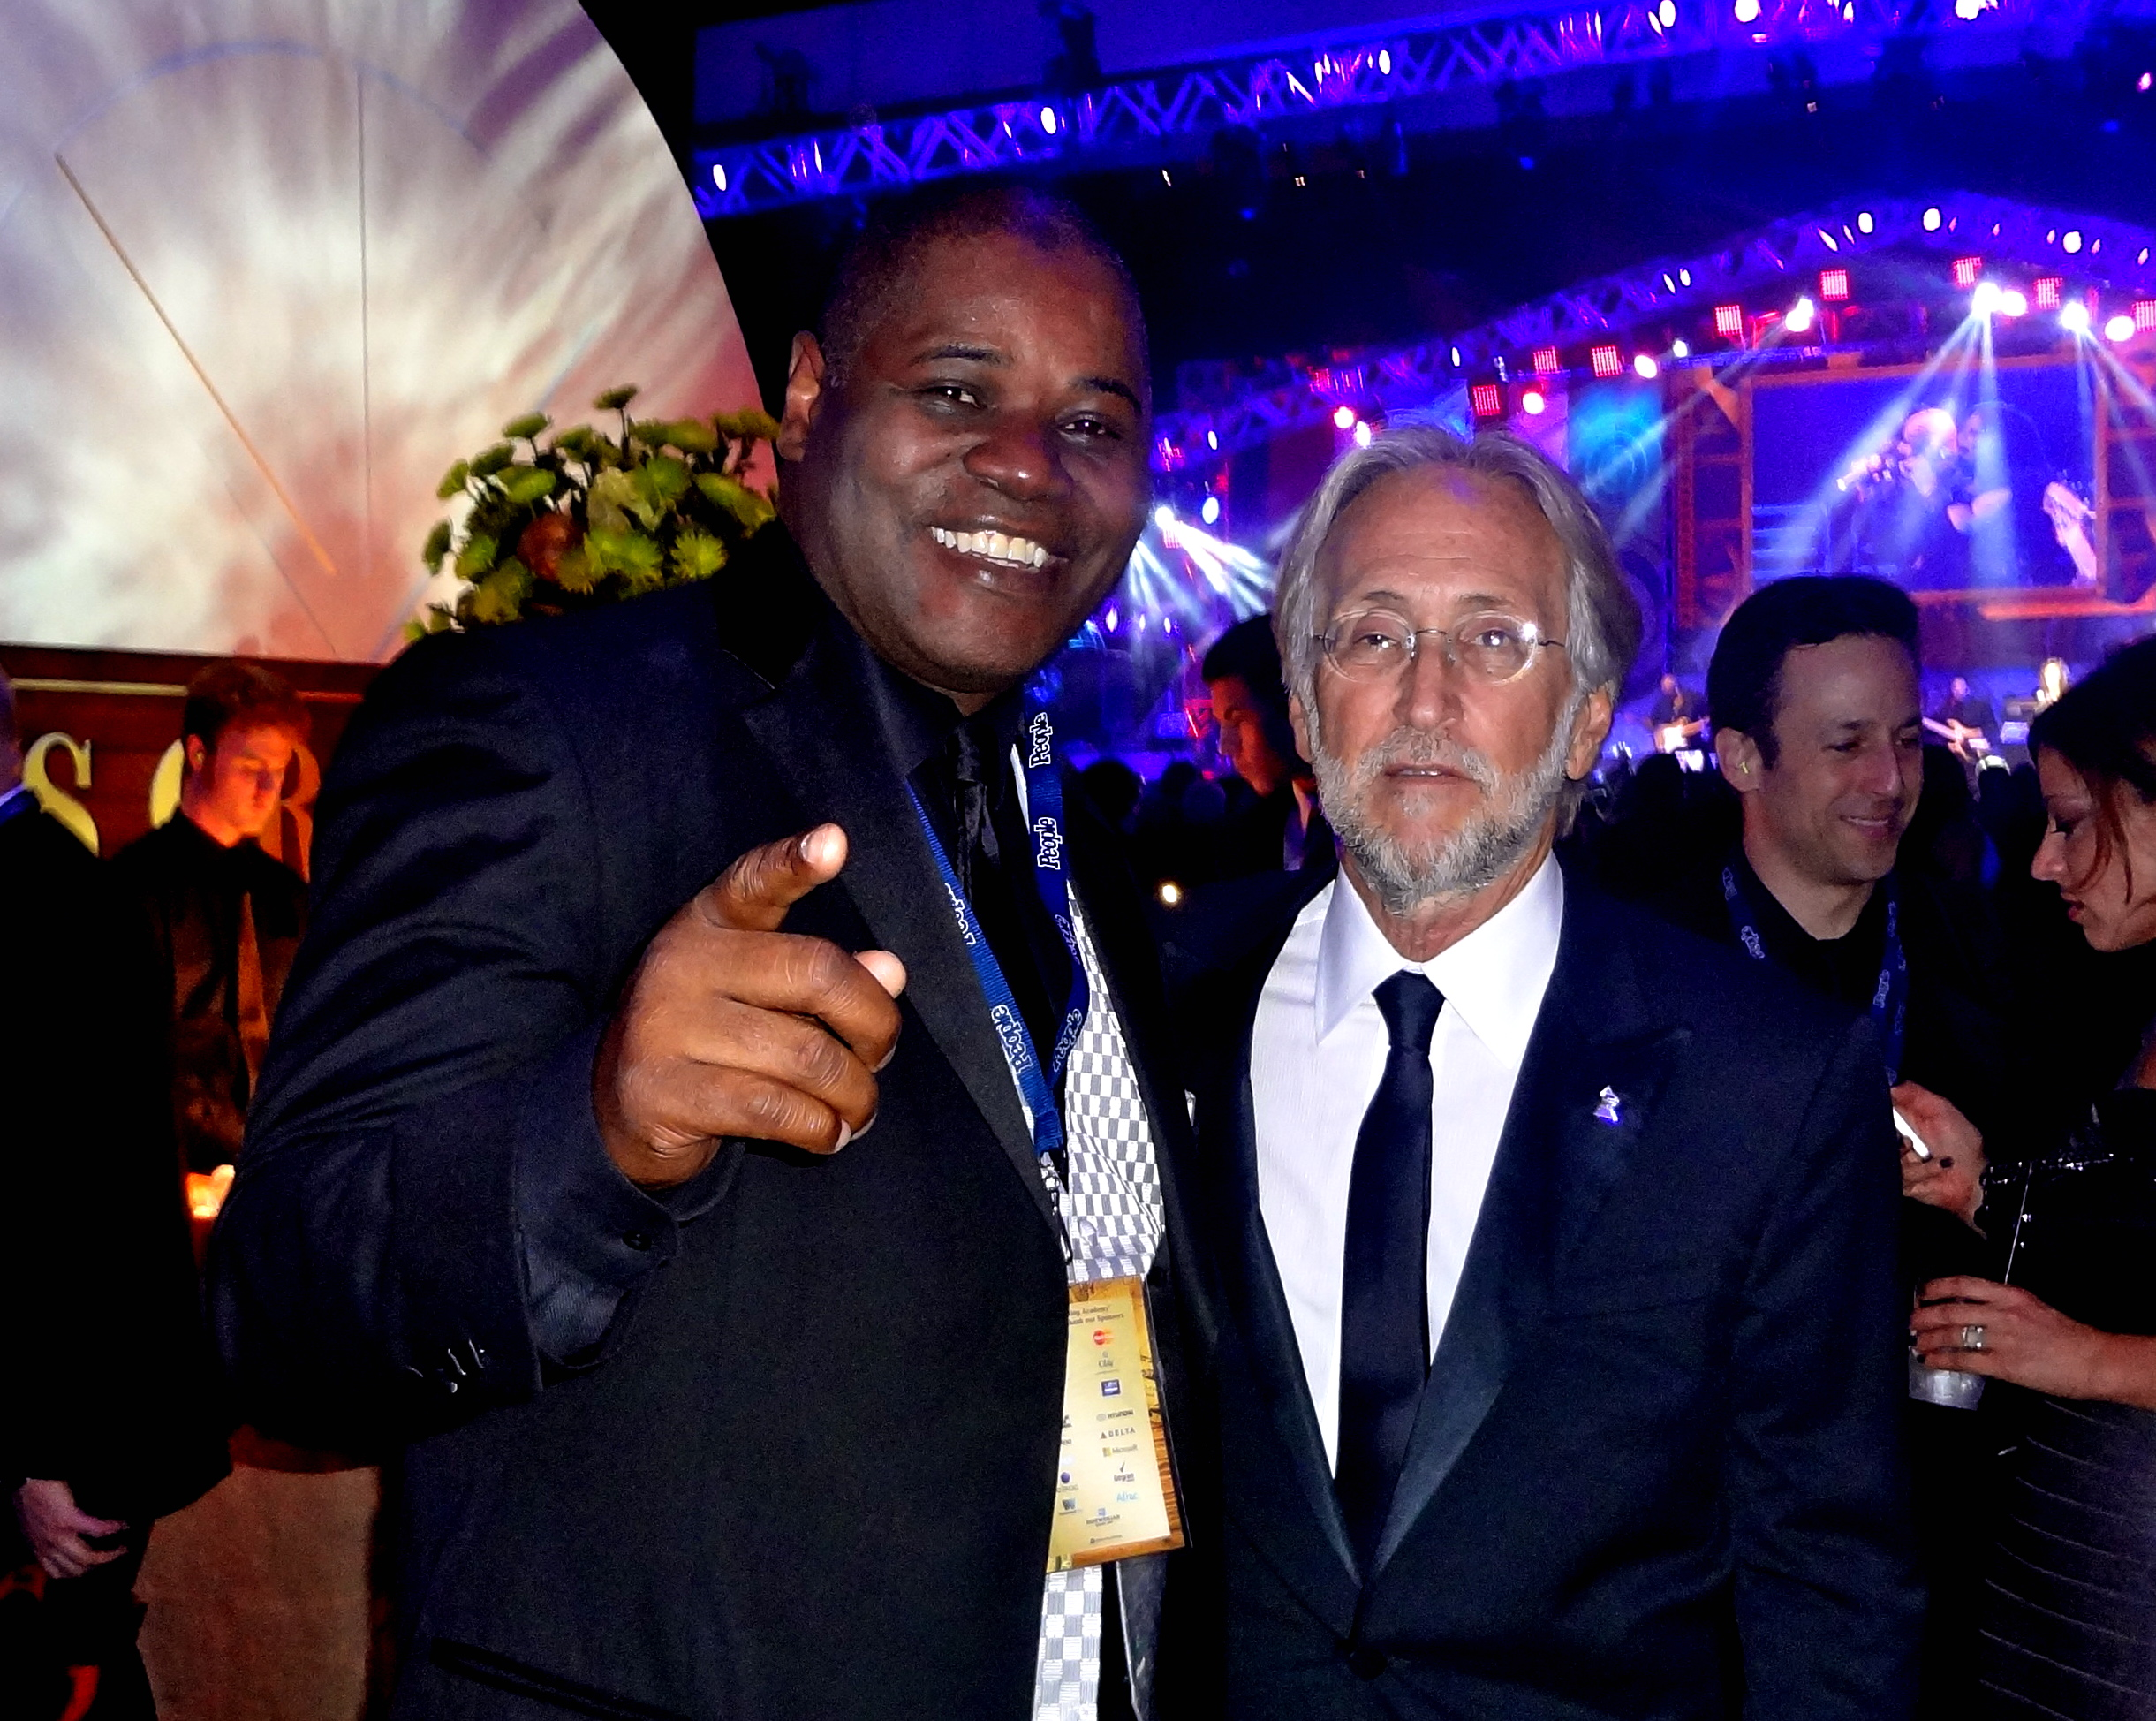 Caesar & Neil Portnow -  President of The Recording Academy (Grammy Awards)